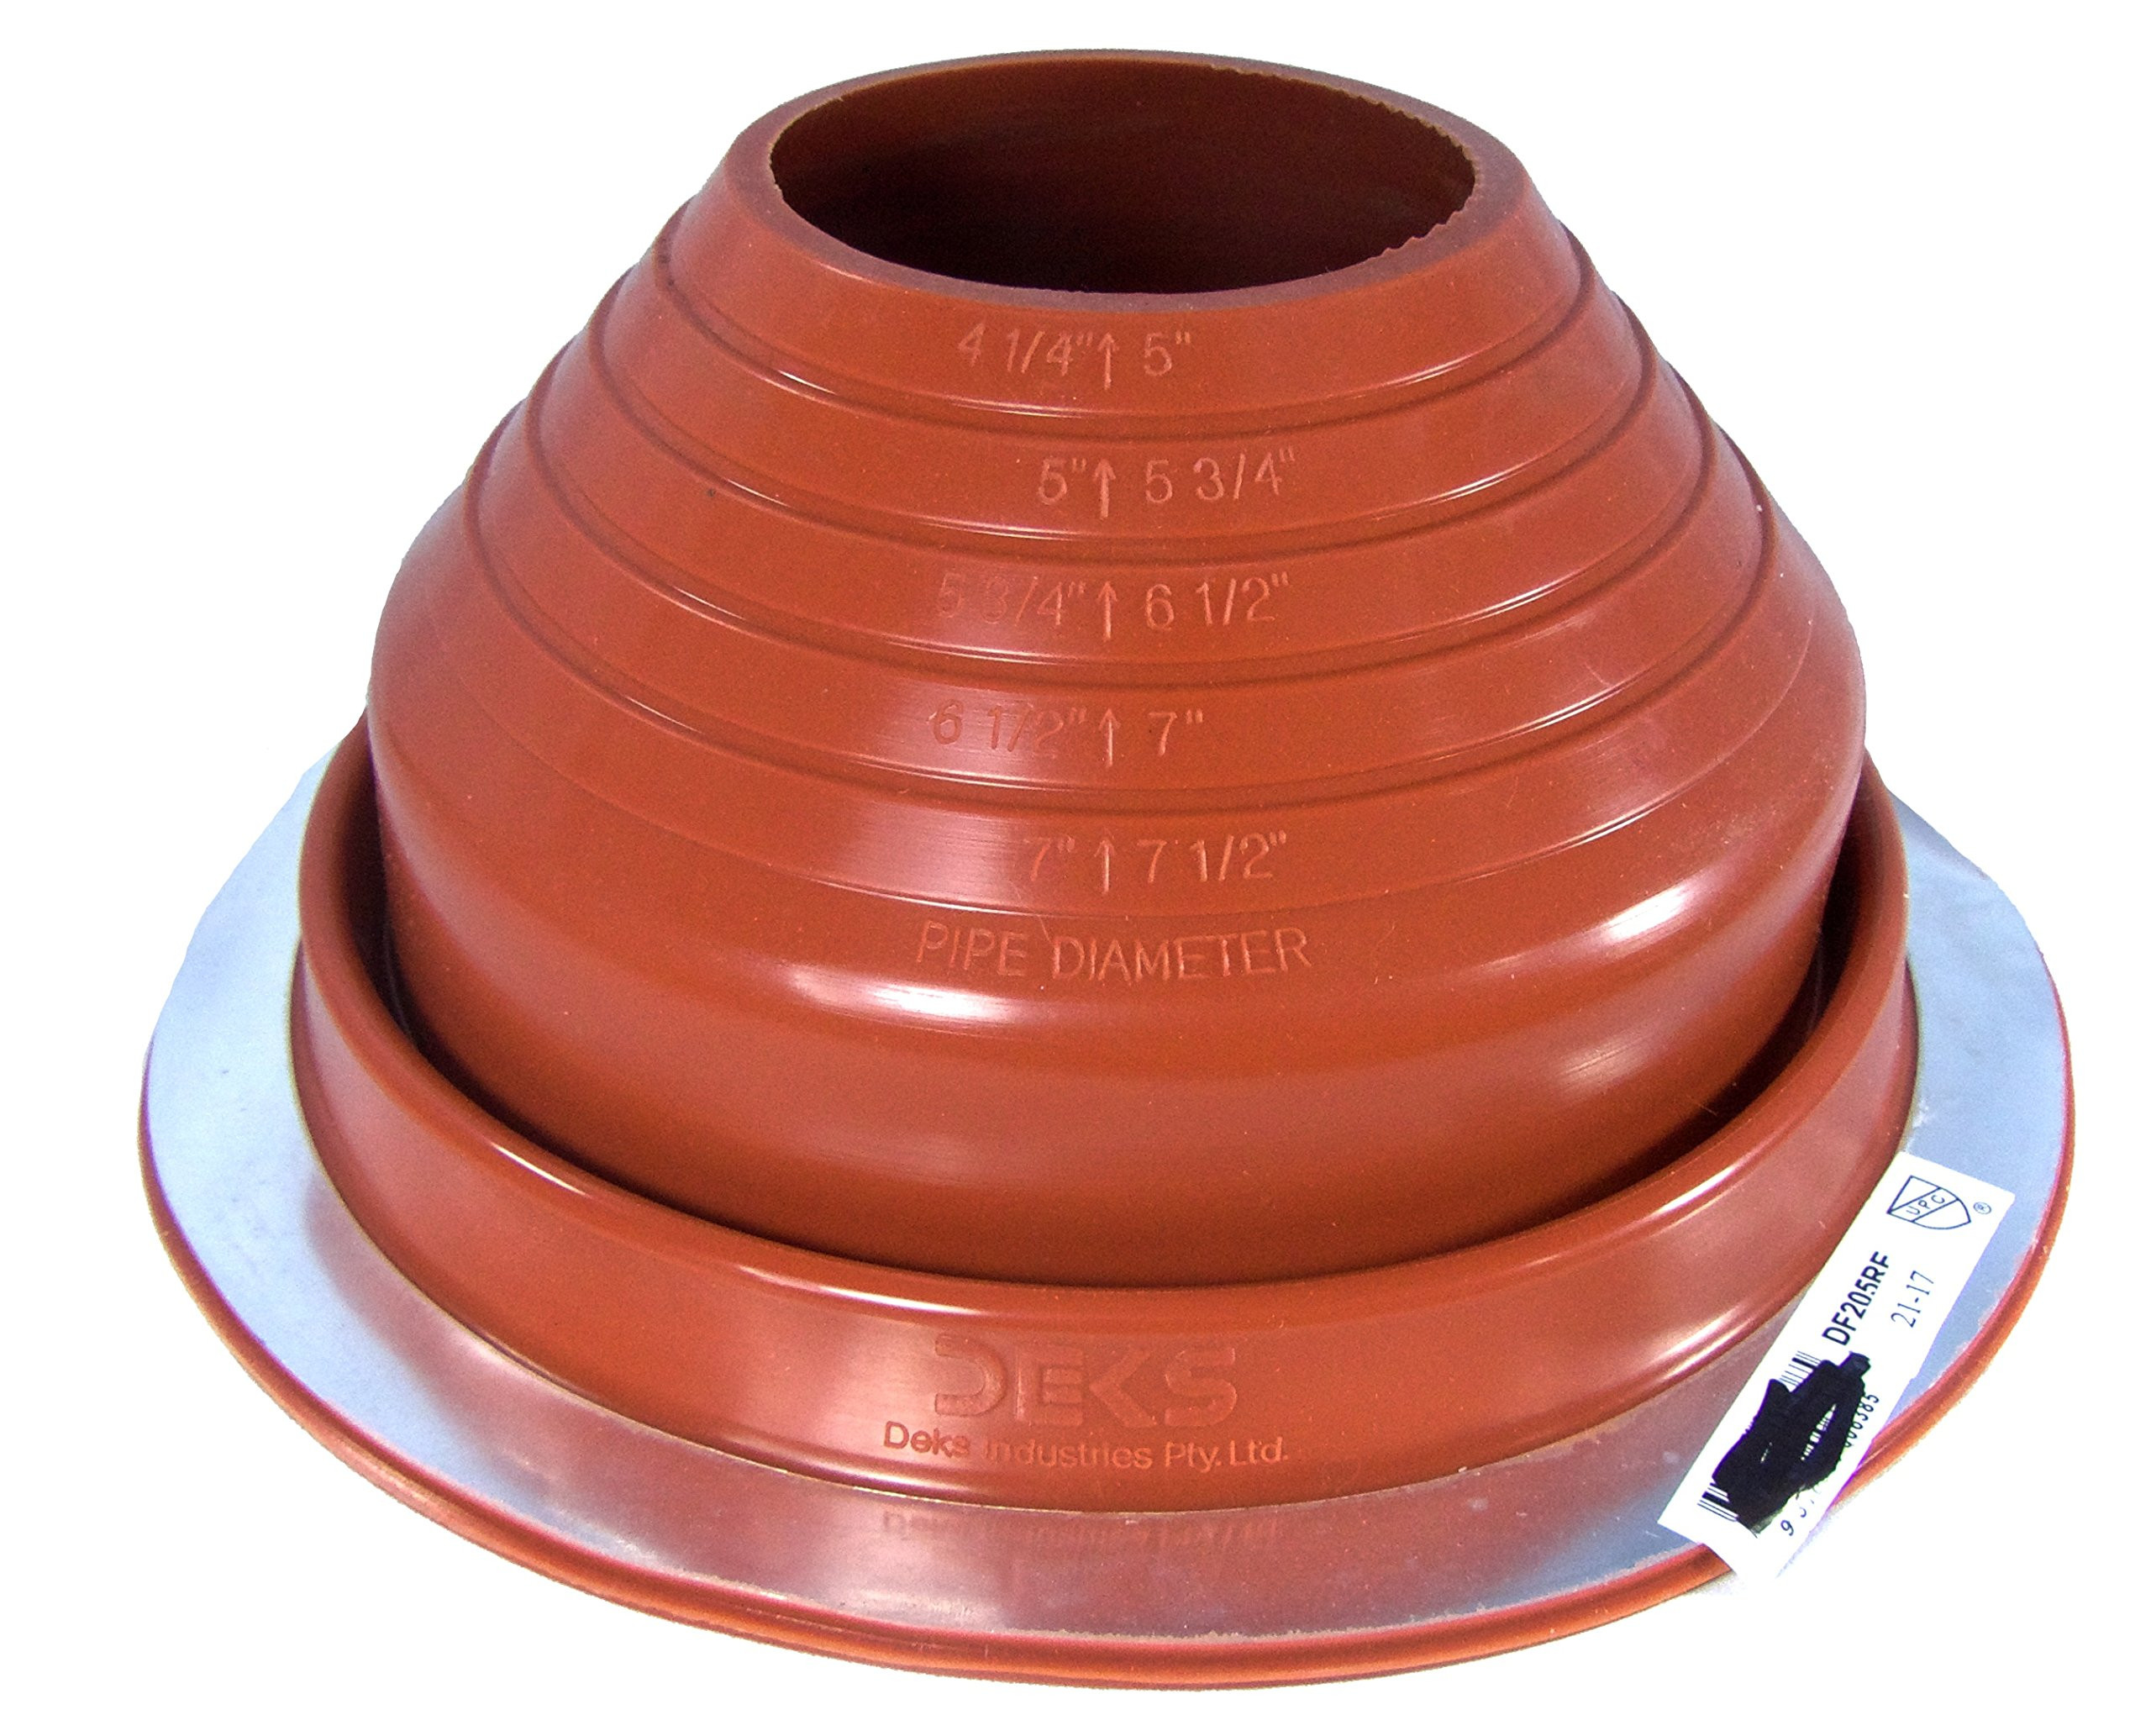 24 inch square vase of best rated in roof flashings helpful customer reviews amazon com with regard to dektite 5 red silicone metal roof pipe flashing round base pipe od 4 1 4 7 1 2